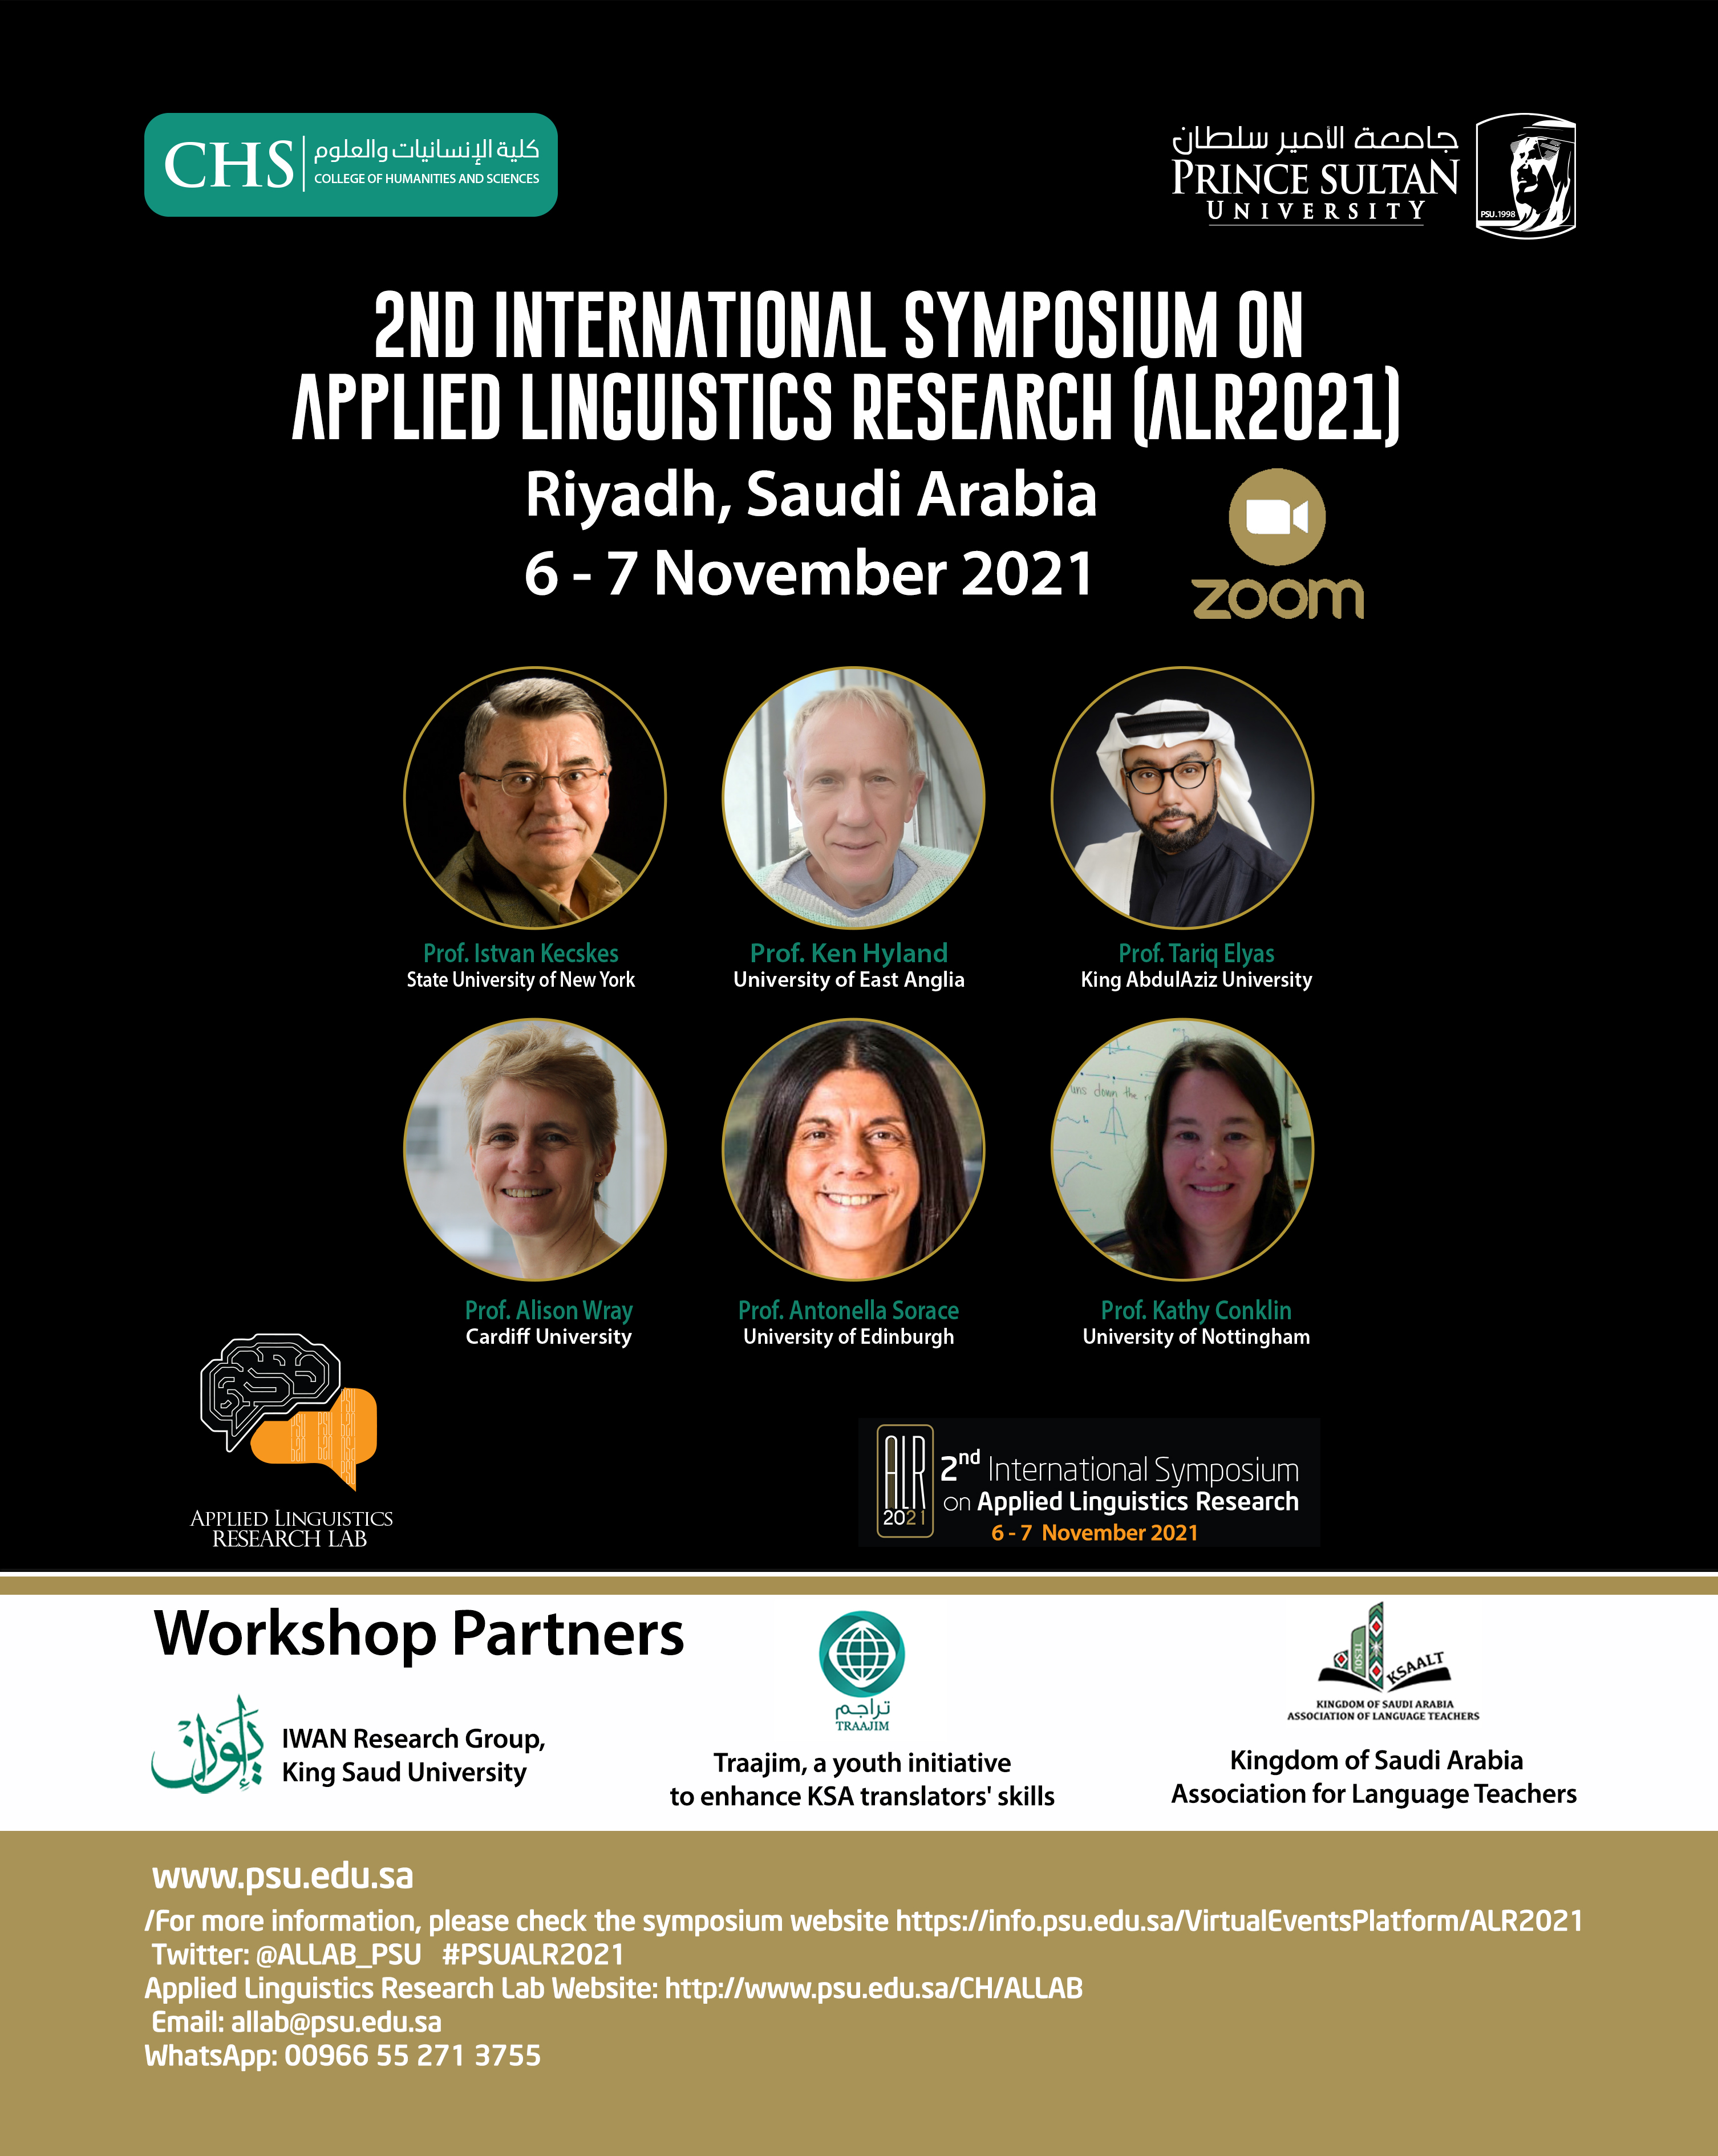 Second International Symposium on Applied Linguistics Research (ALR2021)